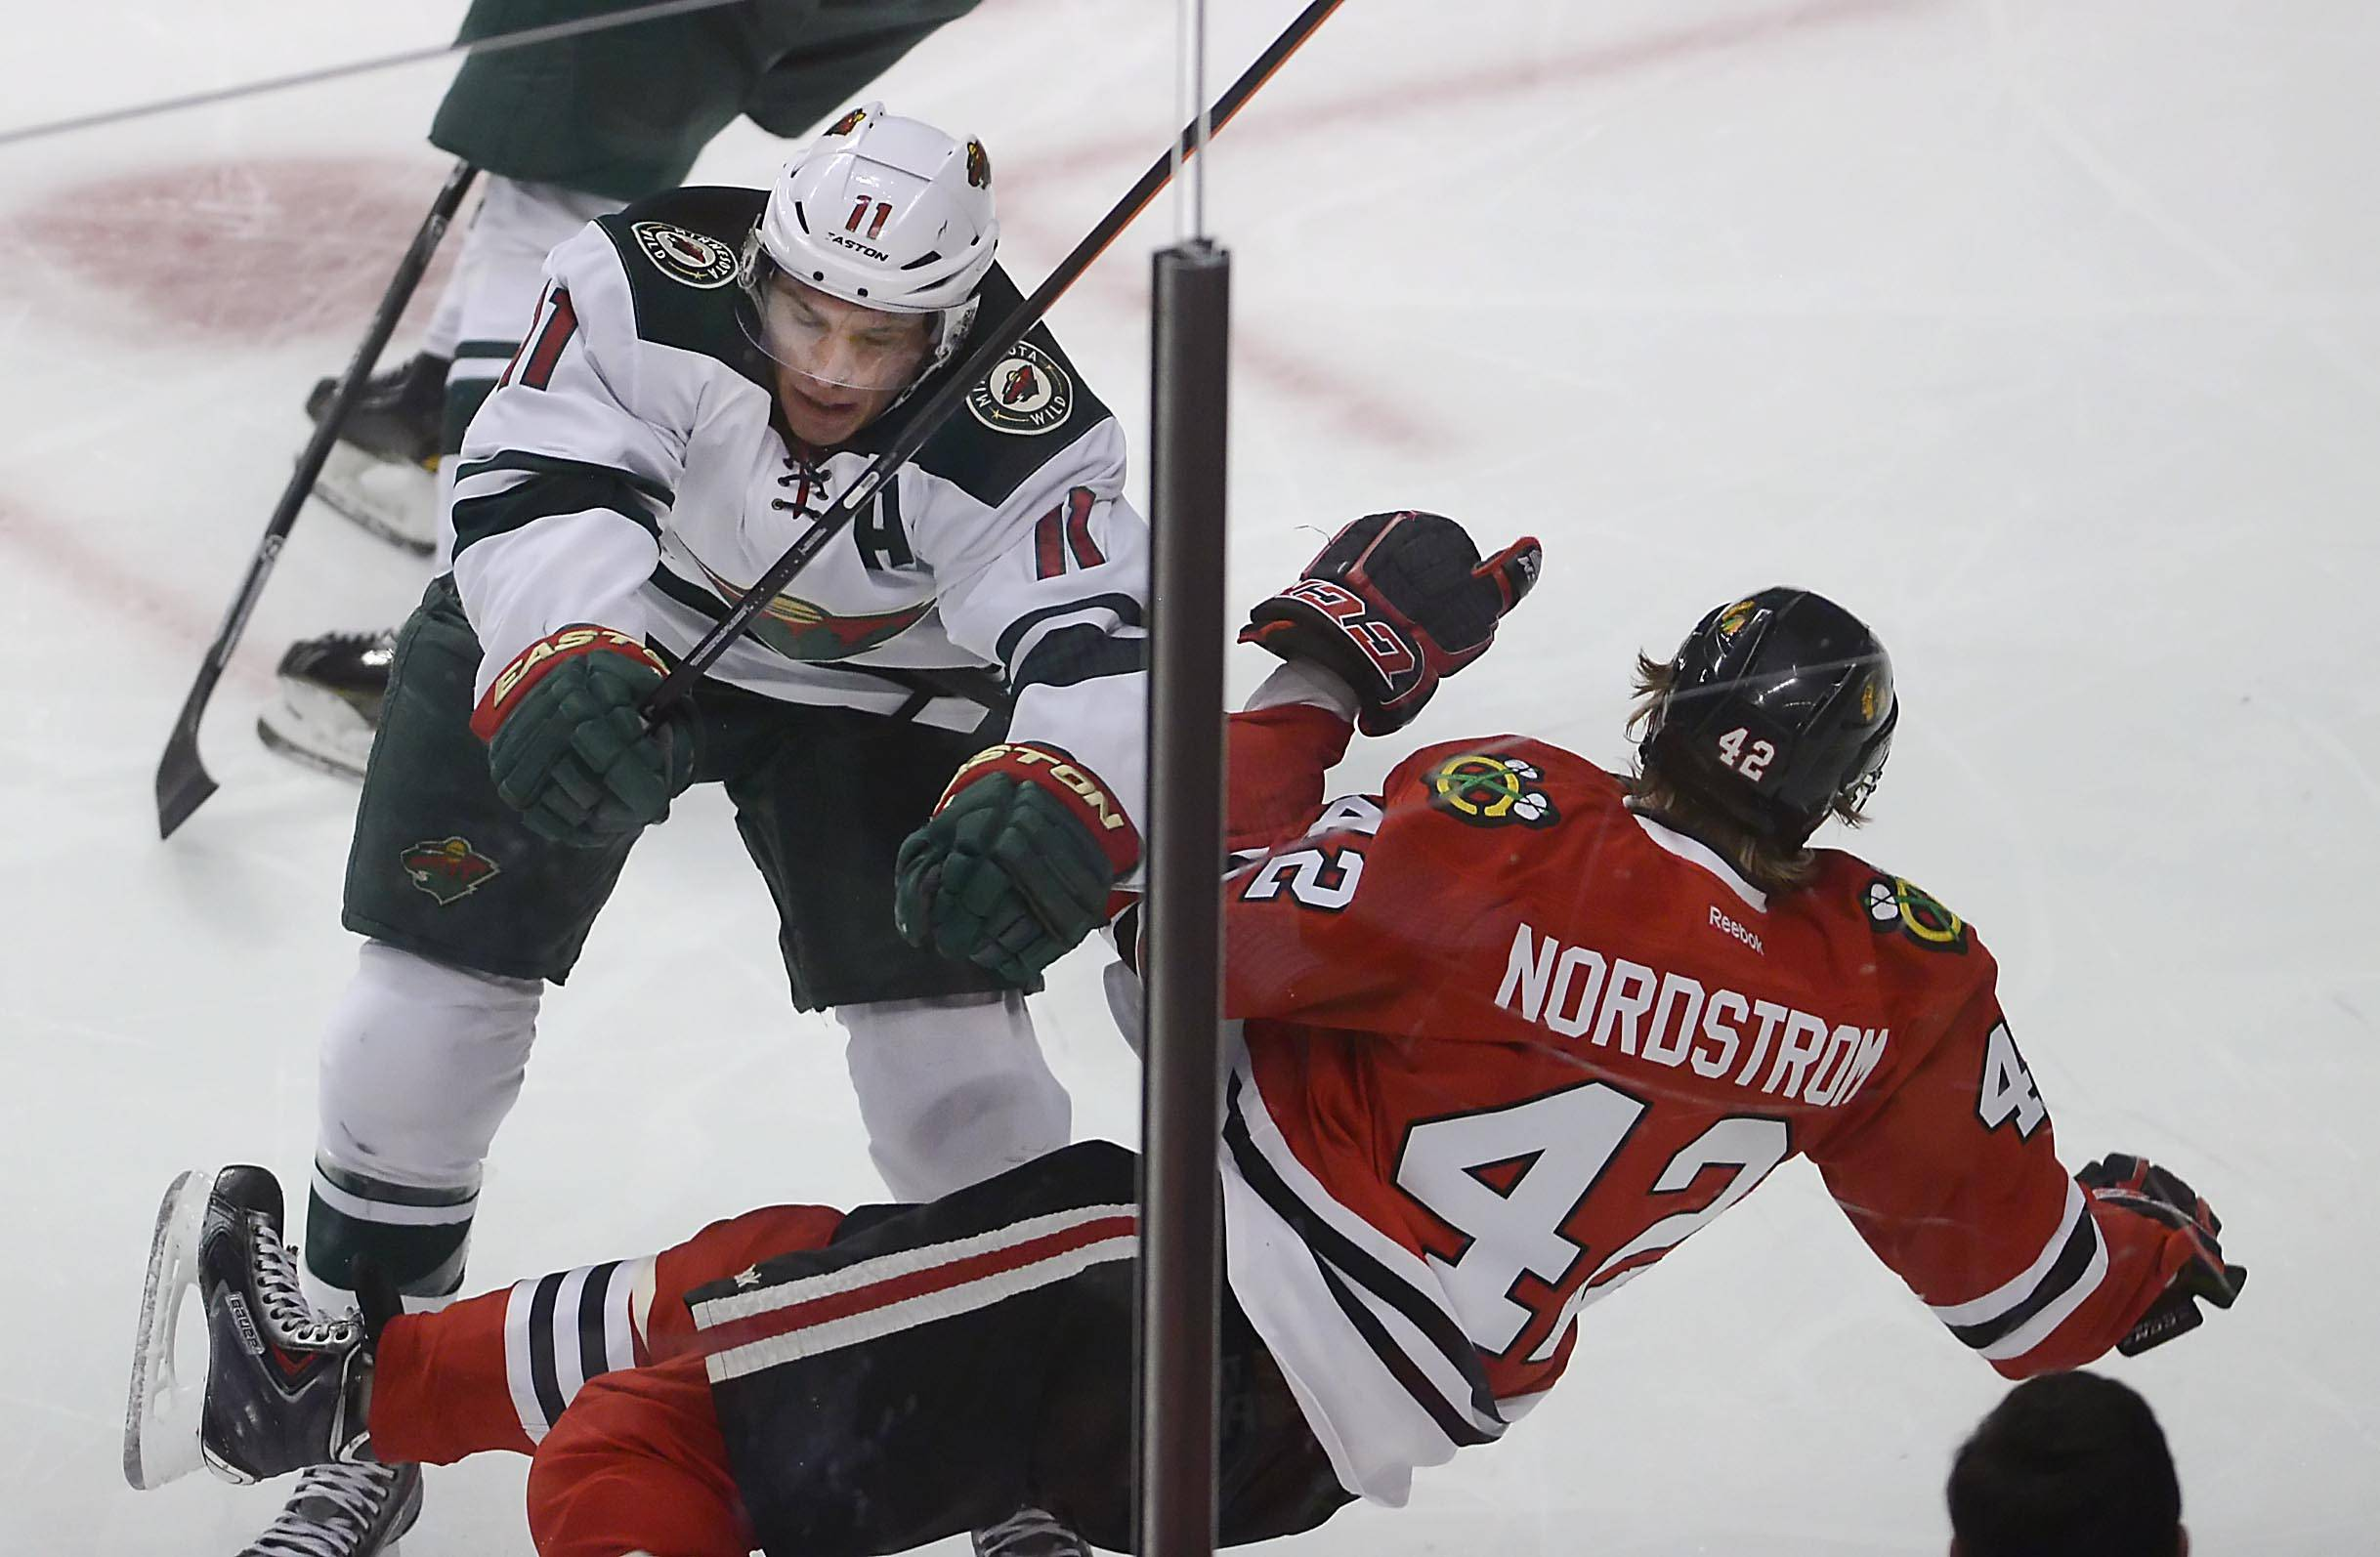 Minnesota Wild left wing Zach Parise checks Chicago Blackhawks center Joakim Nordstrom into the boards.